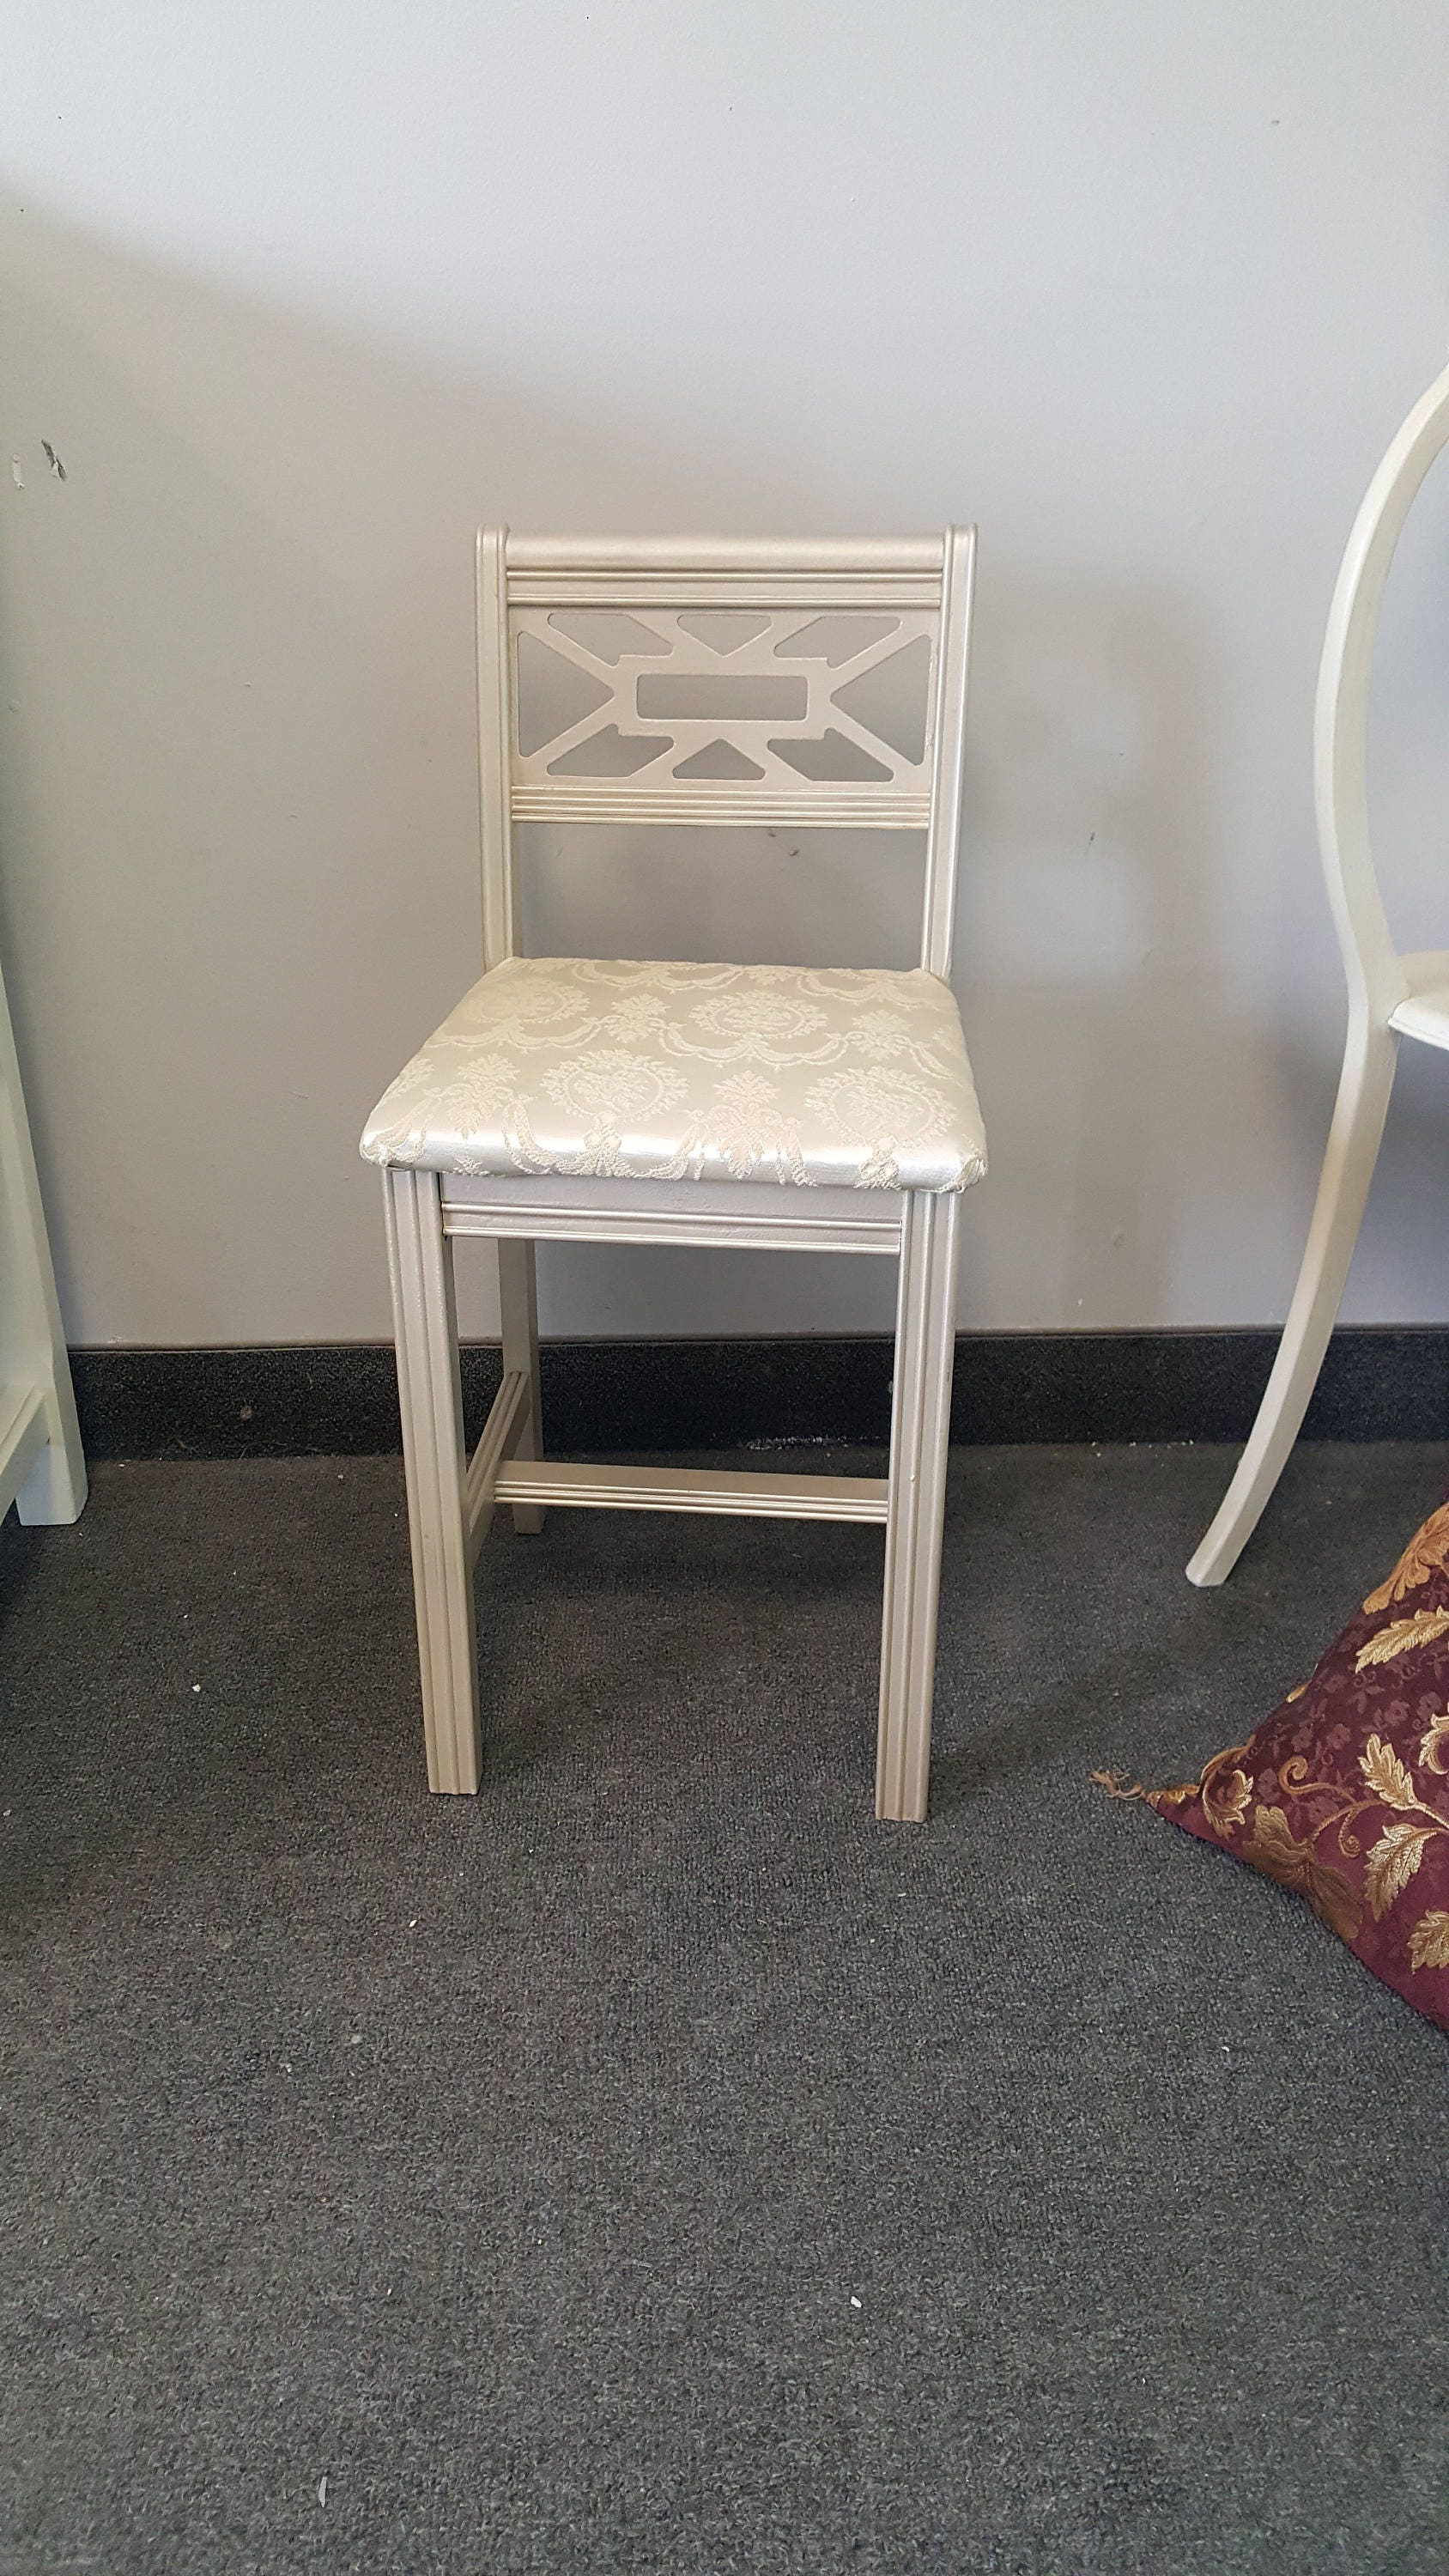 PICK UP ONLY Vintage Metallic vanity chair shabby chic glam